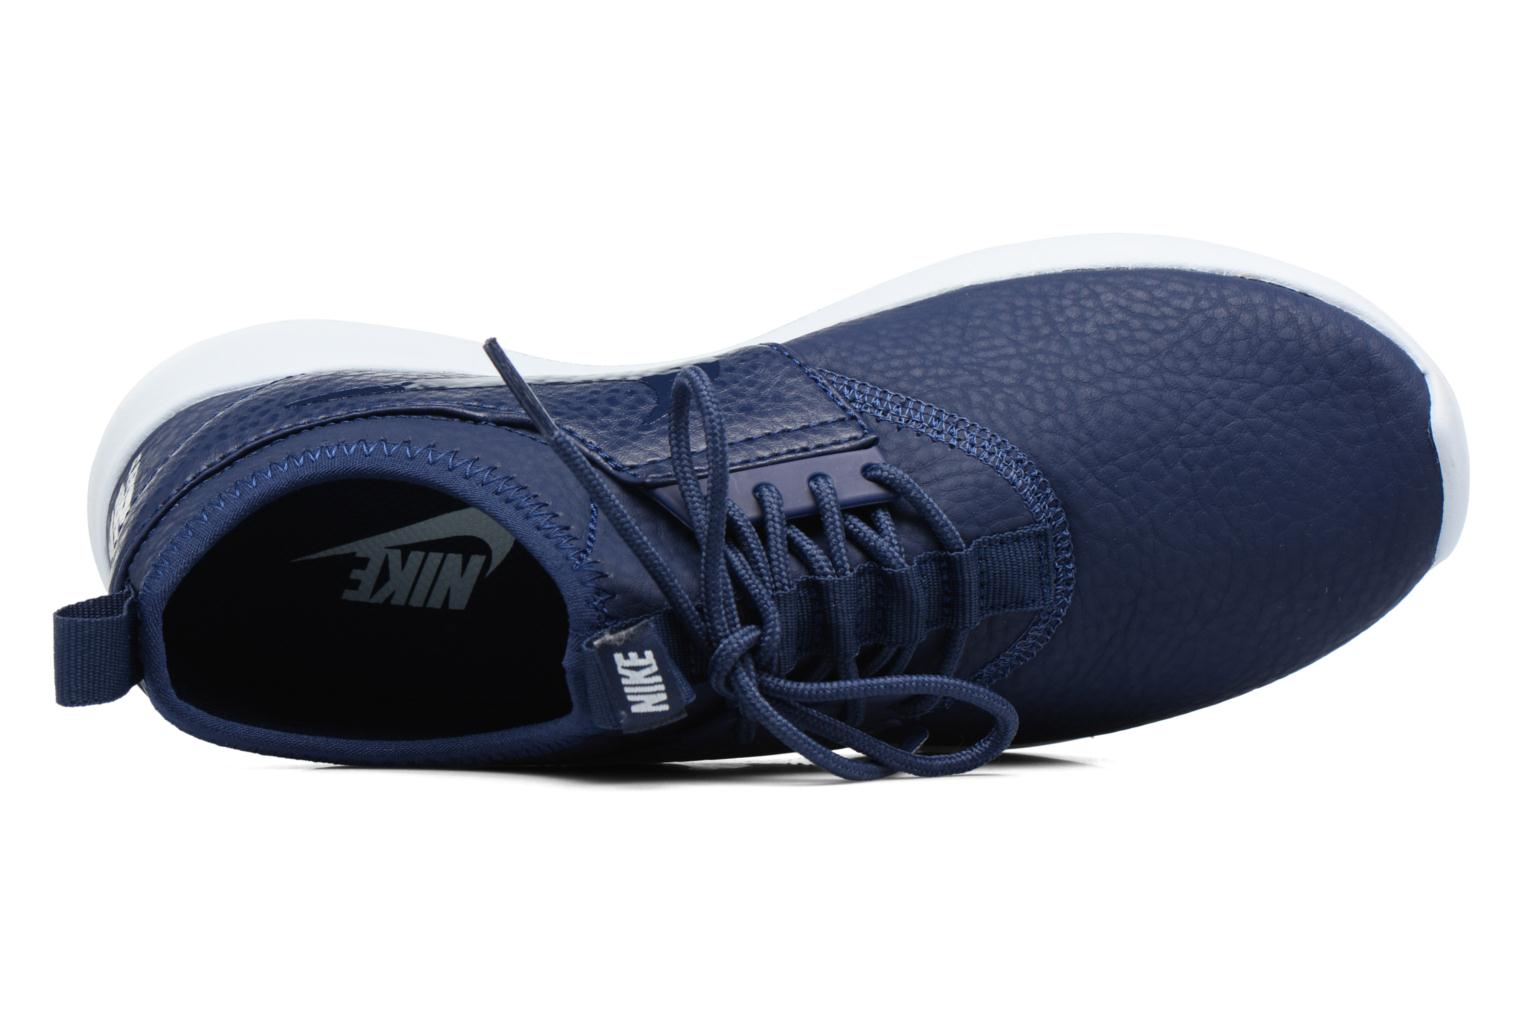 Wmns Nike Juvenate Prm Midnight Navy/Midnight Navy-Blue Tint